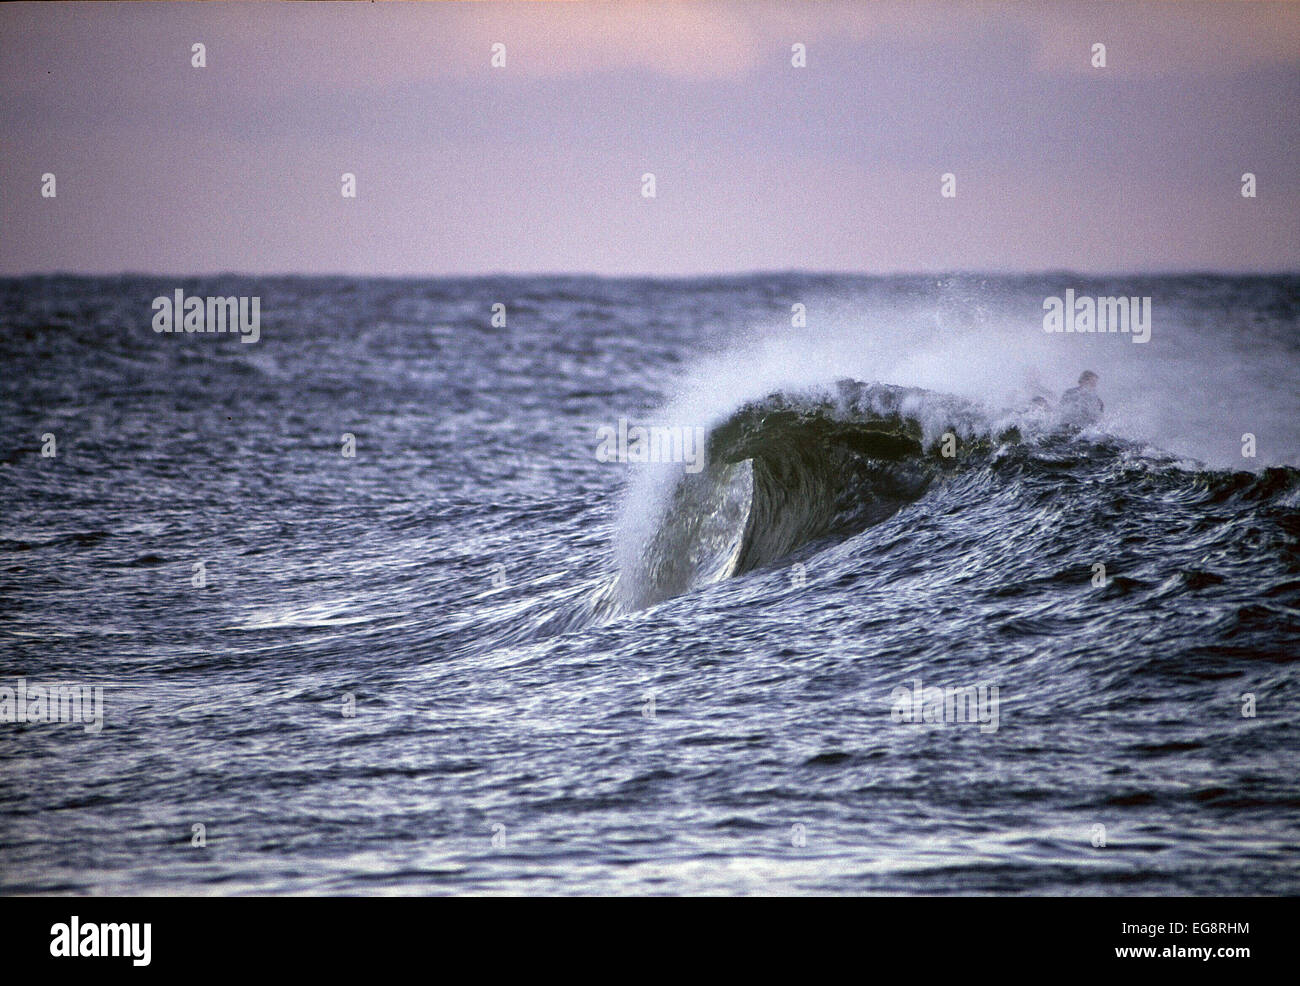 Surfer makes it over the top of  a tubing wave on Gower in Wales.  Wedge shaped wave. - Stock Image